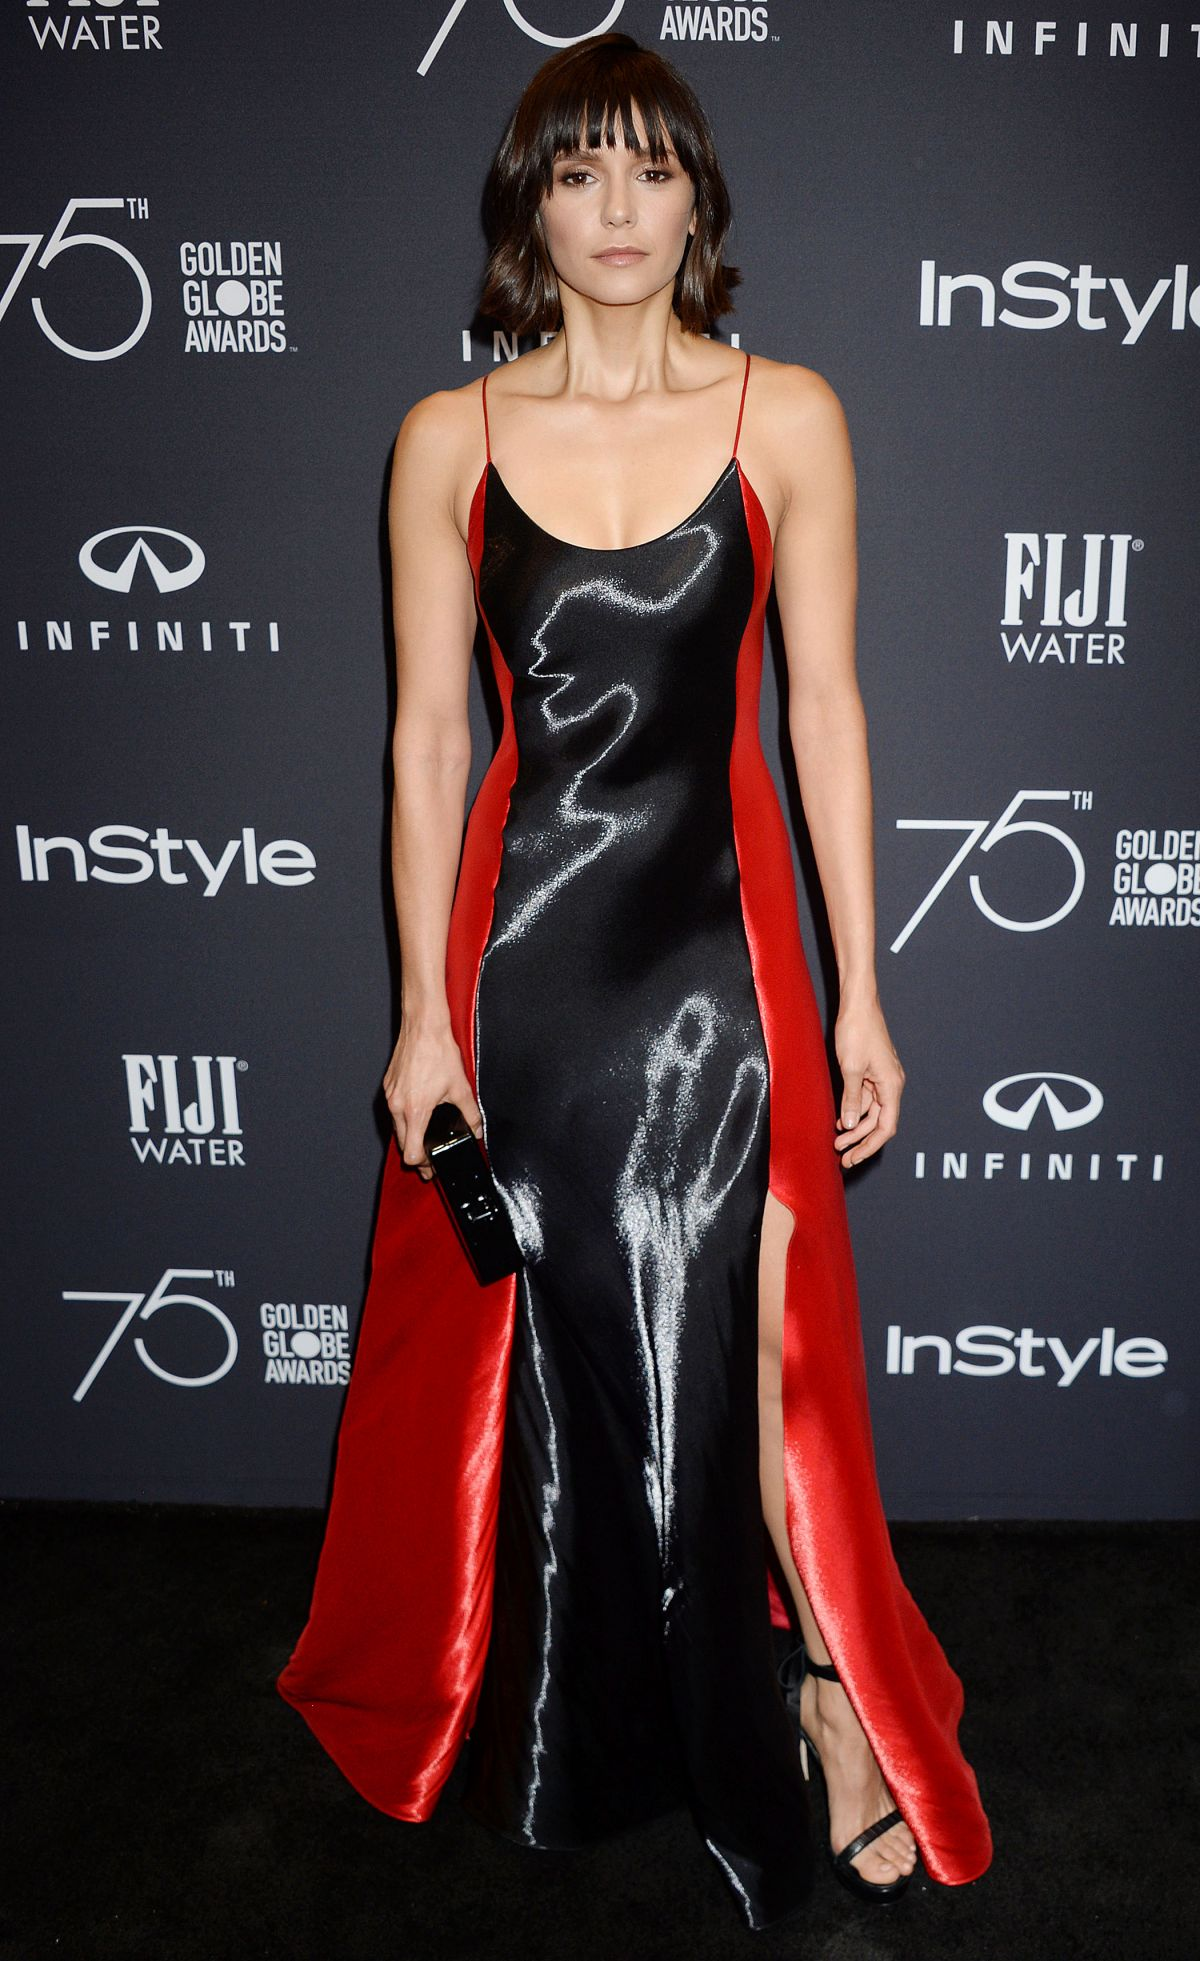 Nina Dobrev At HFPA and InStyle celebrate Golden Globe Season, Los Angeles   nina-dobrev-at-hfpa-and-instyle-celebrate-golden-globe-season-los-angeles-2